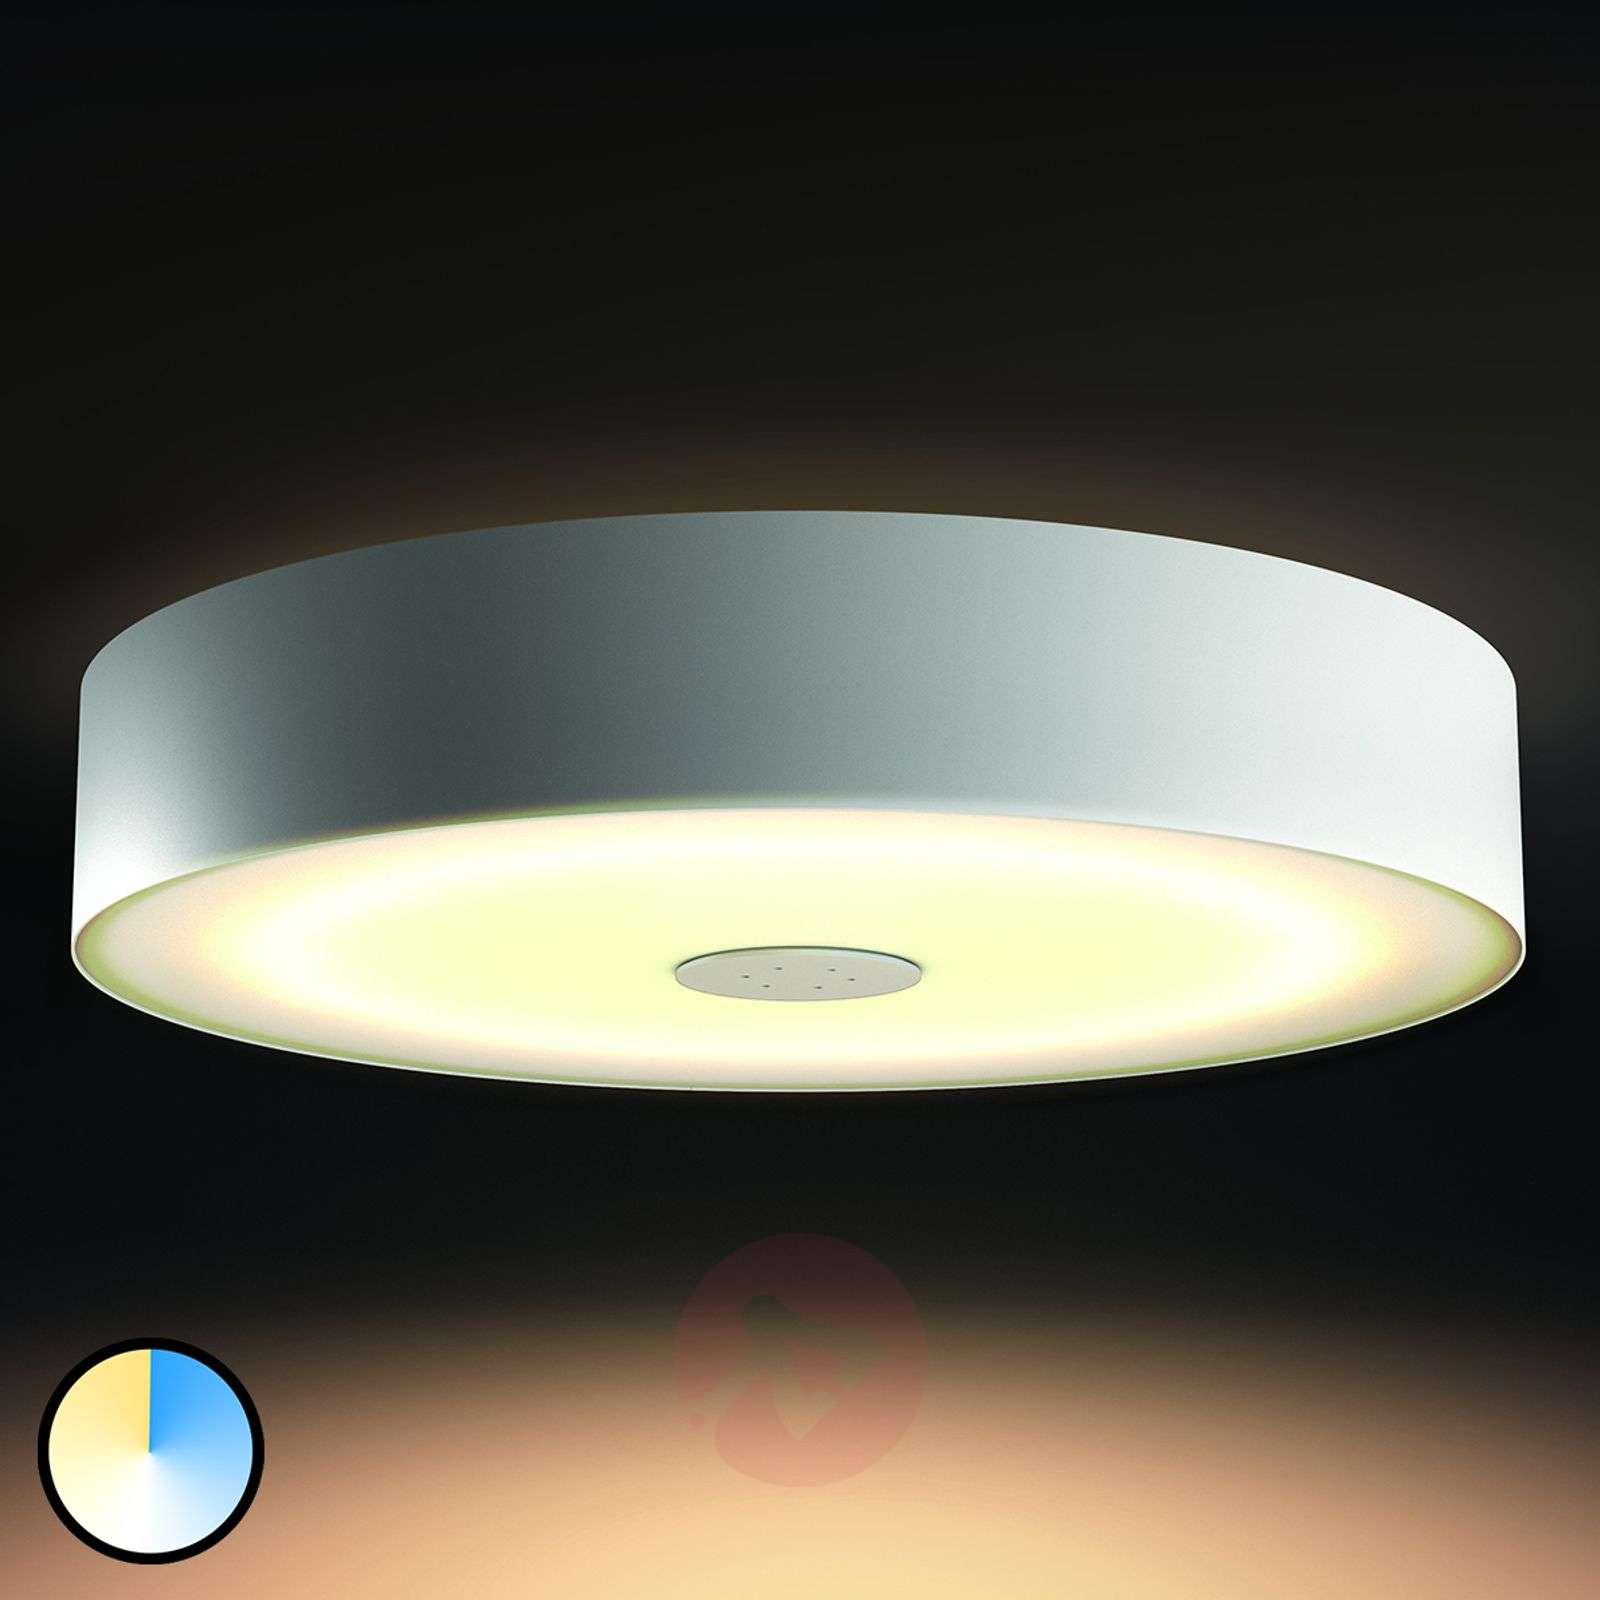 Philips Hue White Ambiance Fair Ceiling Lamp White Lights Co Uk